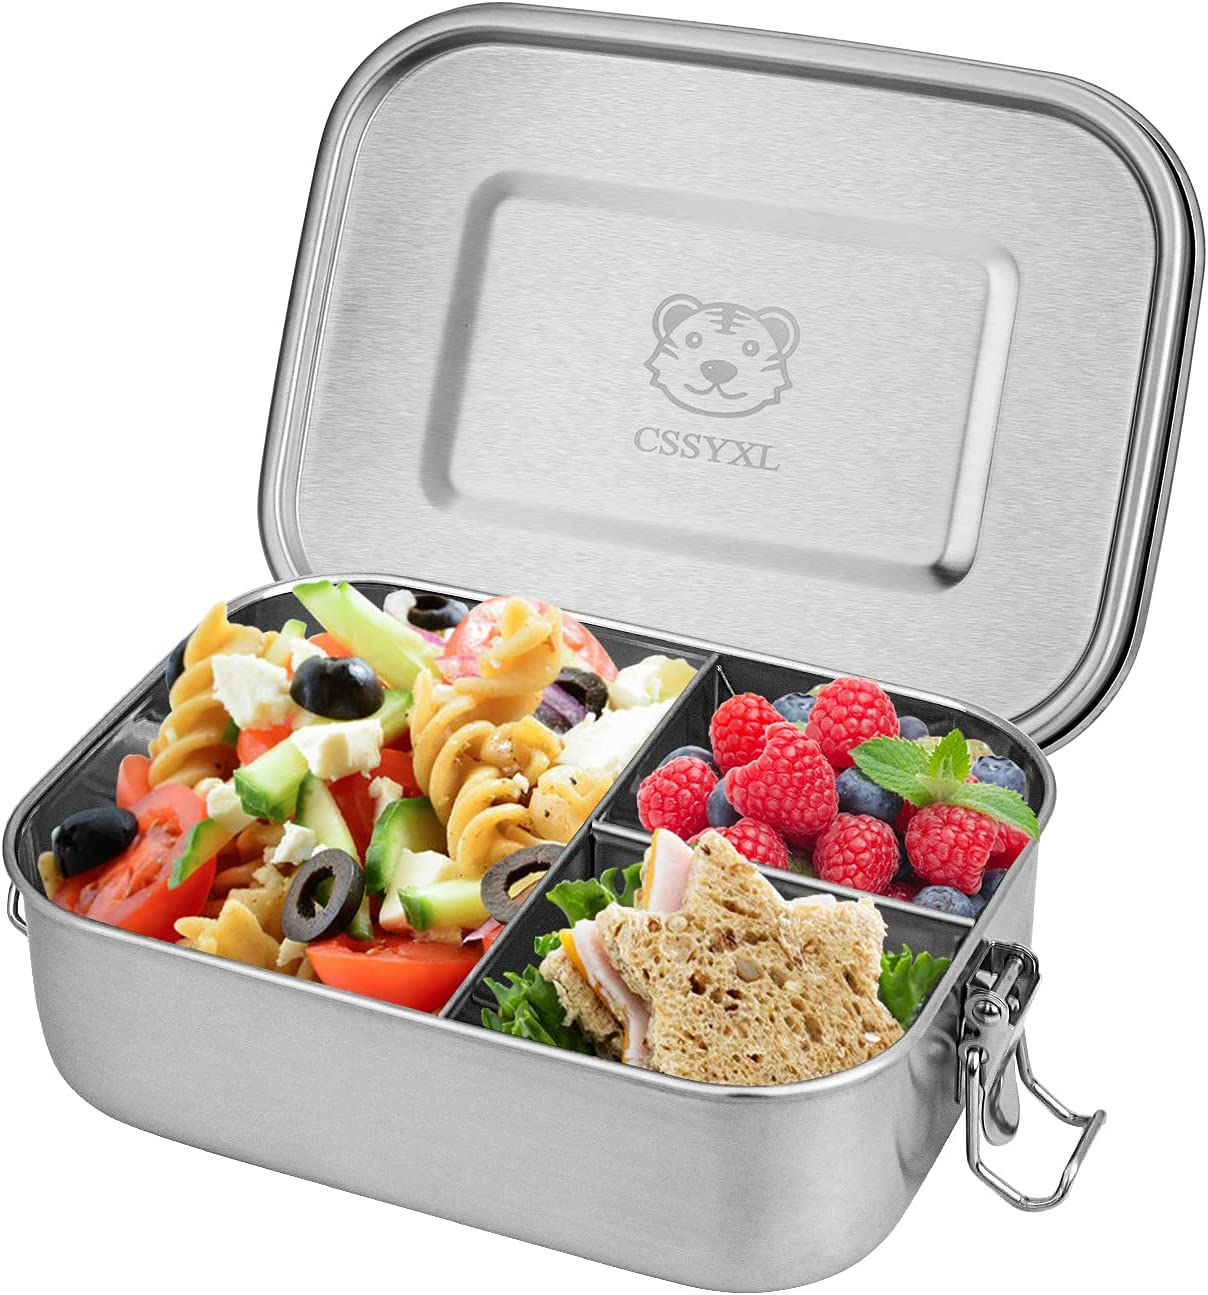 Stainless Steel Bento Lunch Box 800ML Food Storage Containers 3 compartment Fixed Divided Leakproof Tiffin Lunch Container for Kids Adults with Clip Locks Metal Snack Container-Stainless Lid